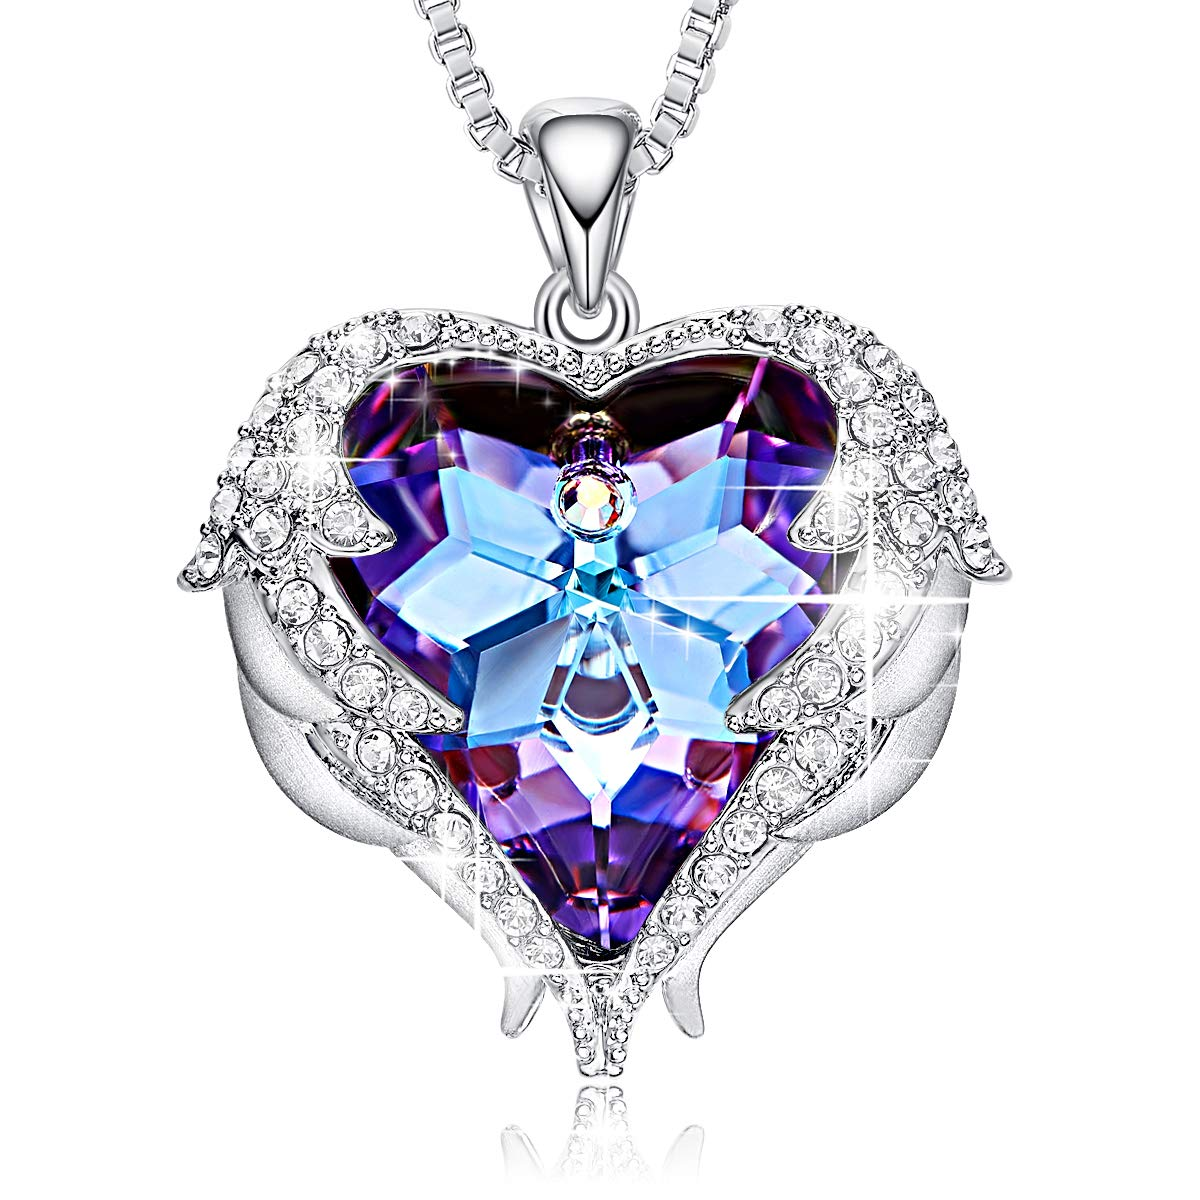 CDE Women's Necklace, Swarovski Heart Crystal Silver Pendants Heart of Ocean Necklaces Fashion Jewelry Gifts for Women Girls Mom